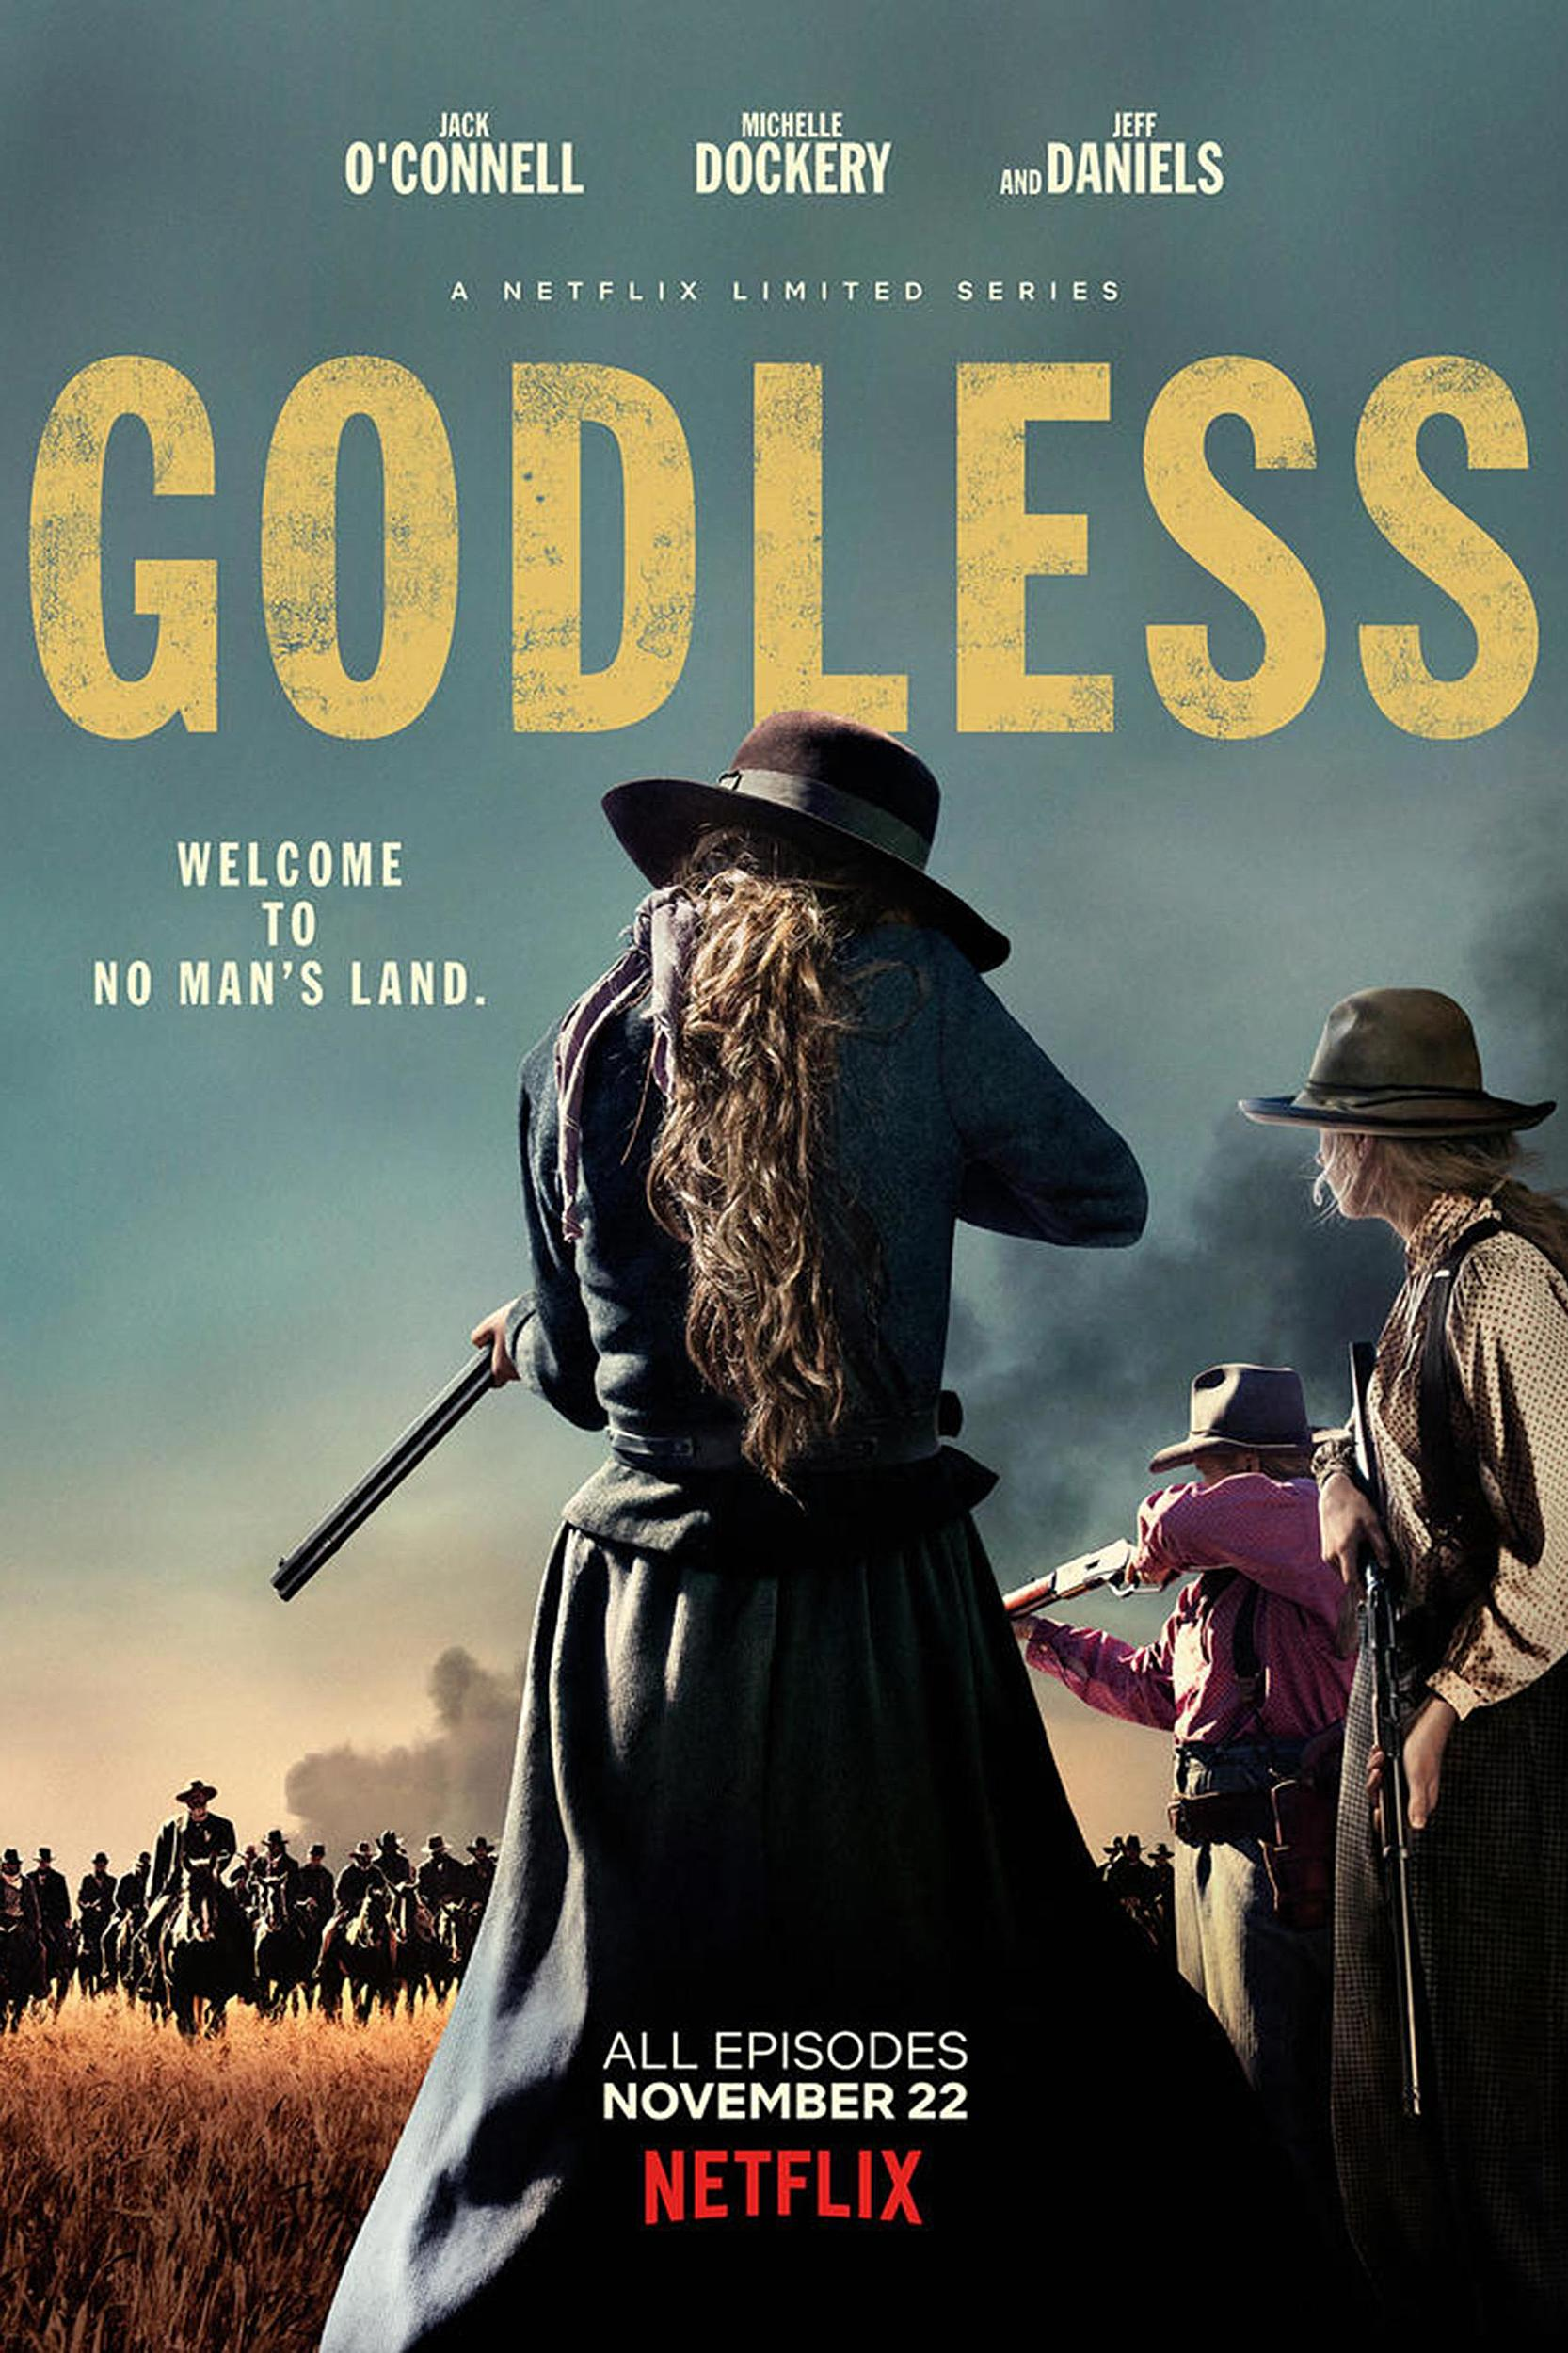 Why Is Netflix Marketing 'Godless' as a Series About Women?